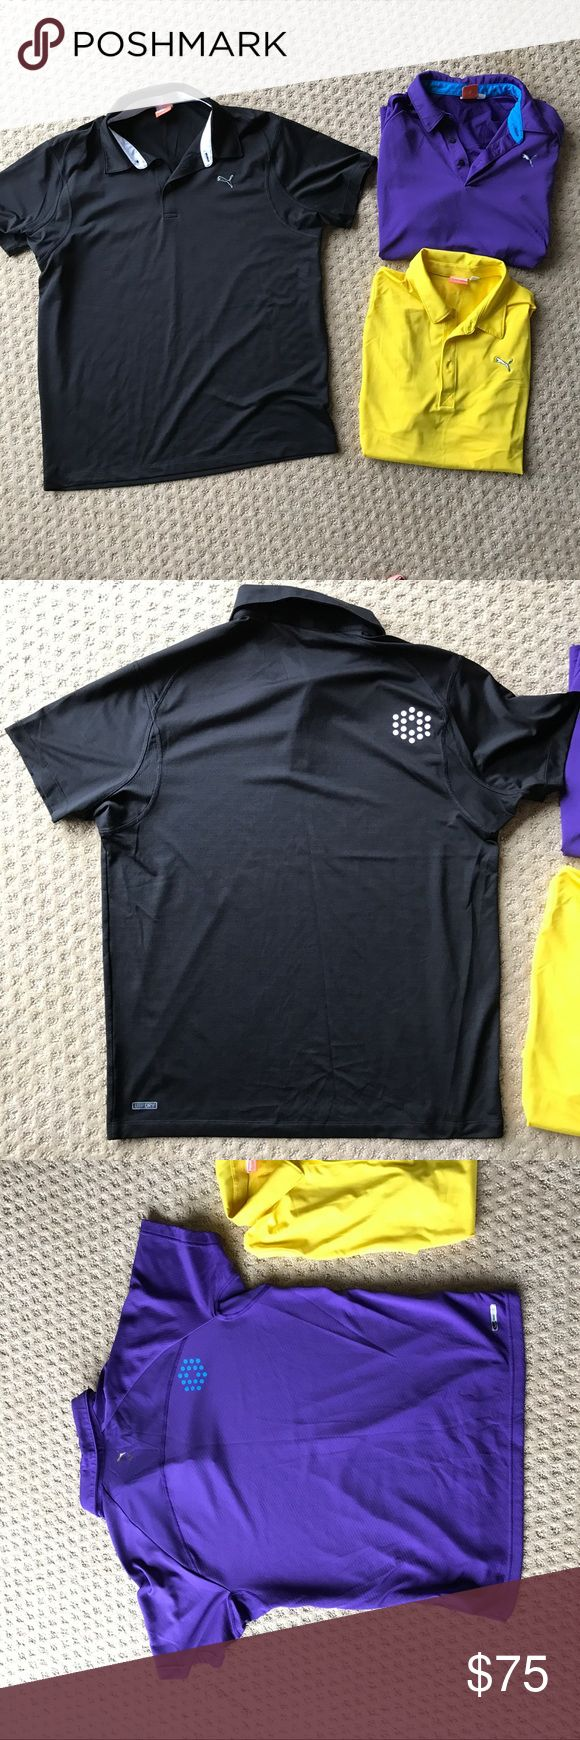 Set of 3 Puma Dry fit Golf Polo Shirts Set of Three puma golf shirts. In like new condition. No flaws or signs of wear. Black, yellow, and purple polos. Shirts say USPDRY on them. Puma Shirts Polos